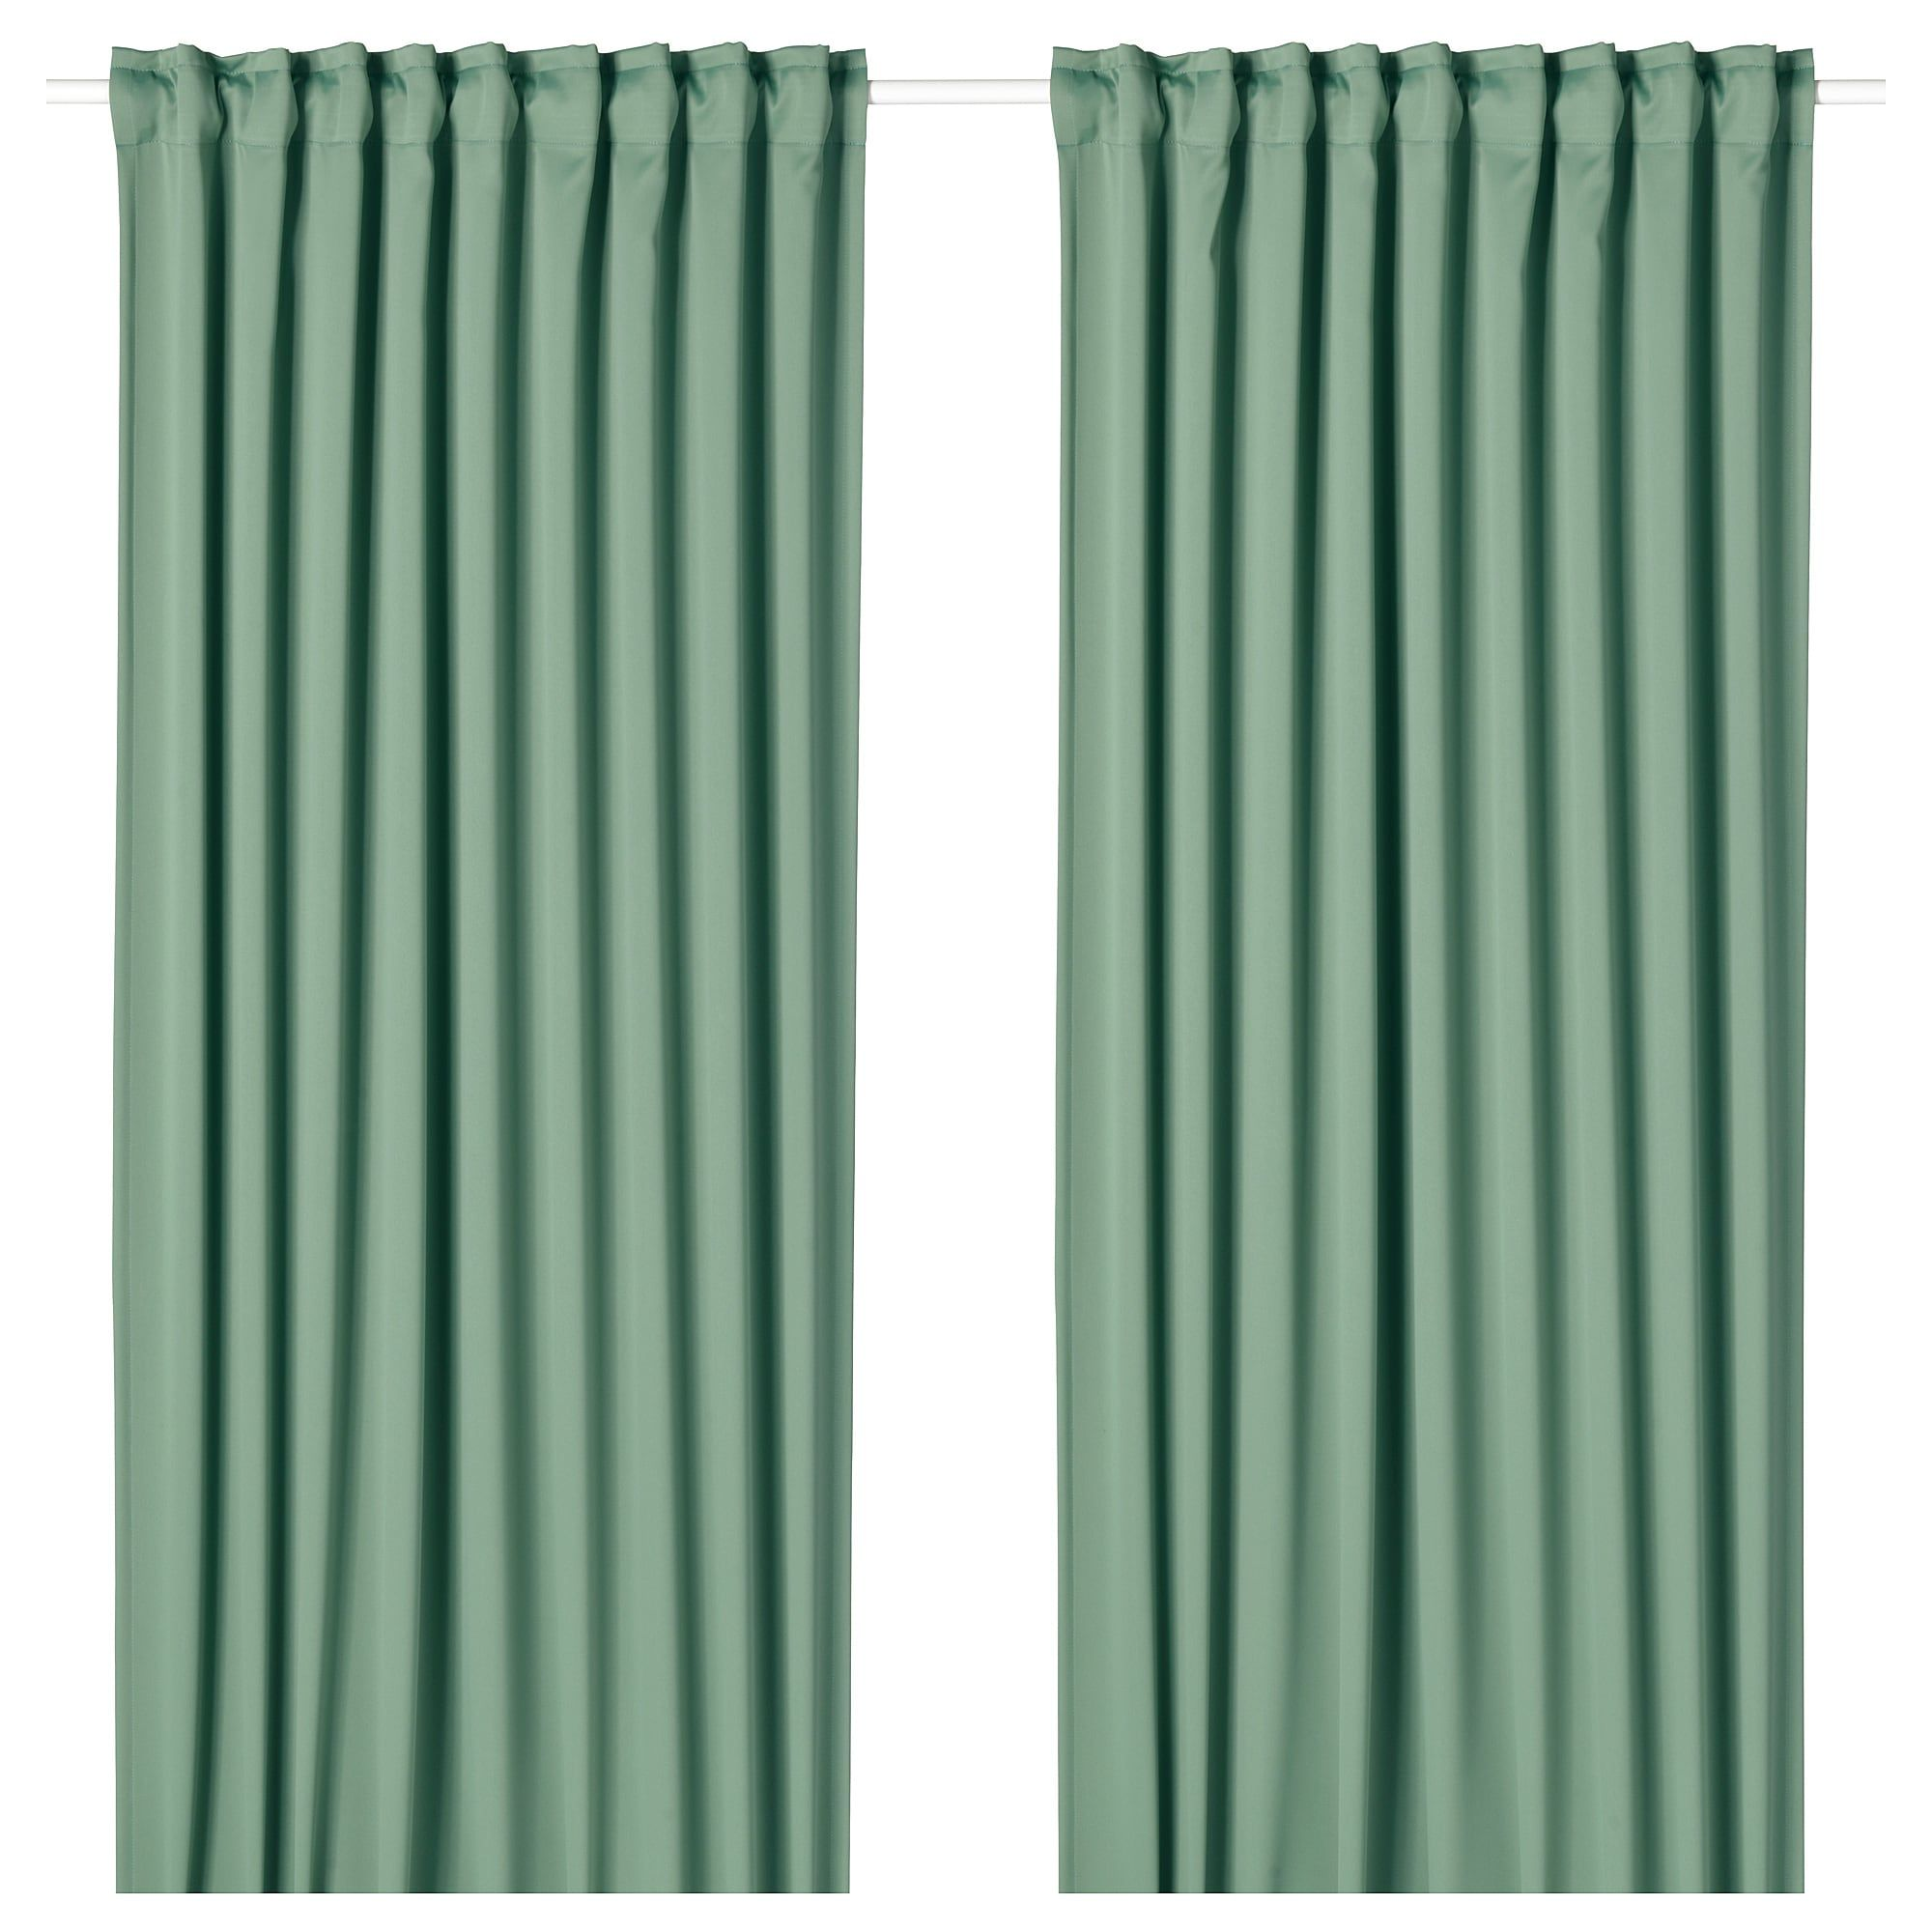 Ikea Vorhänge Majgull Majgull Blackout Curtains 1 Pair Green In 2019 M M S